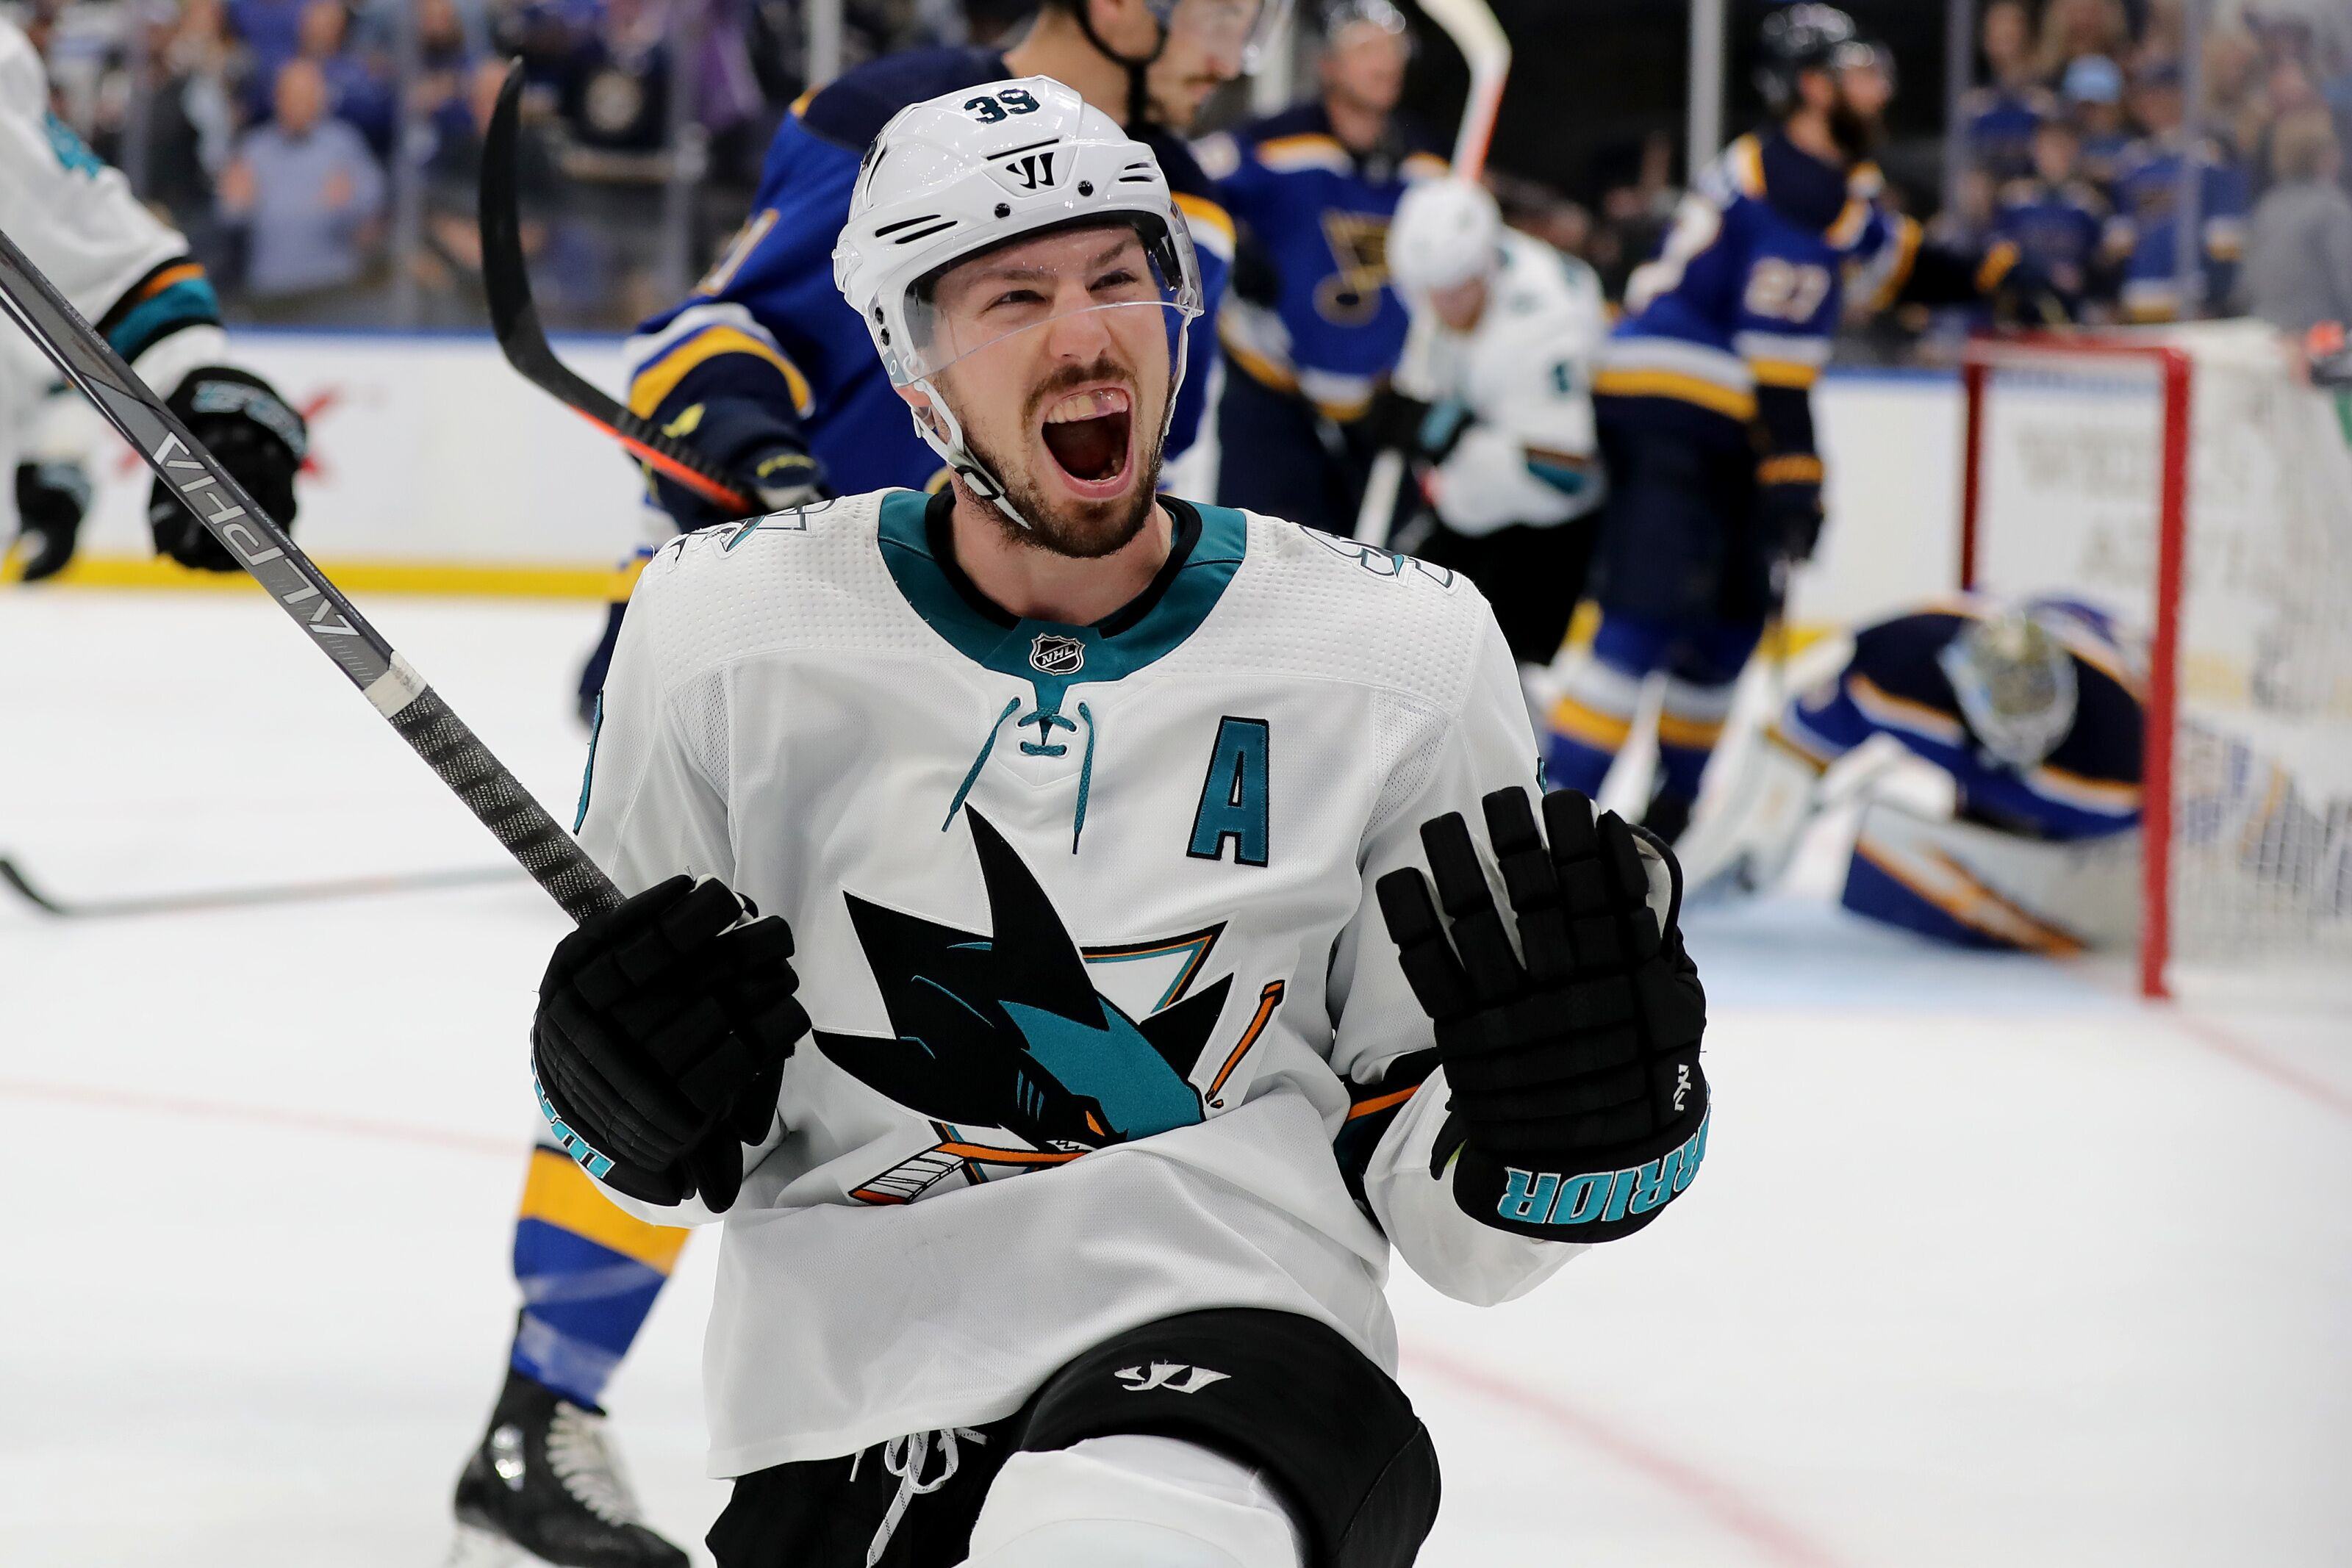 San Jose Sharks: Logan Couture deserves to be the team's next captain